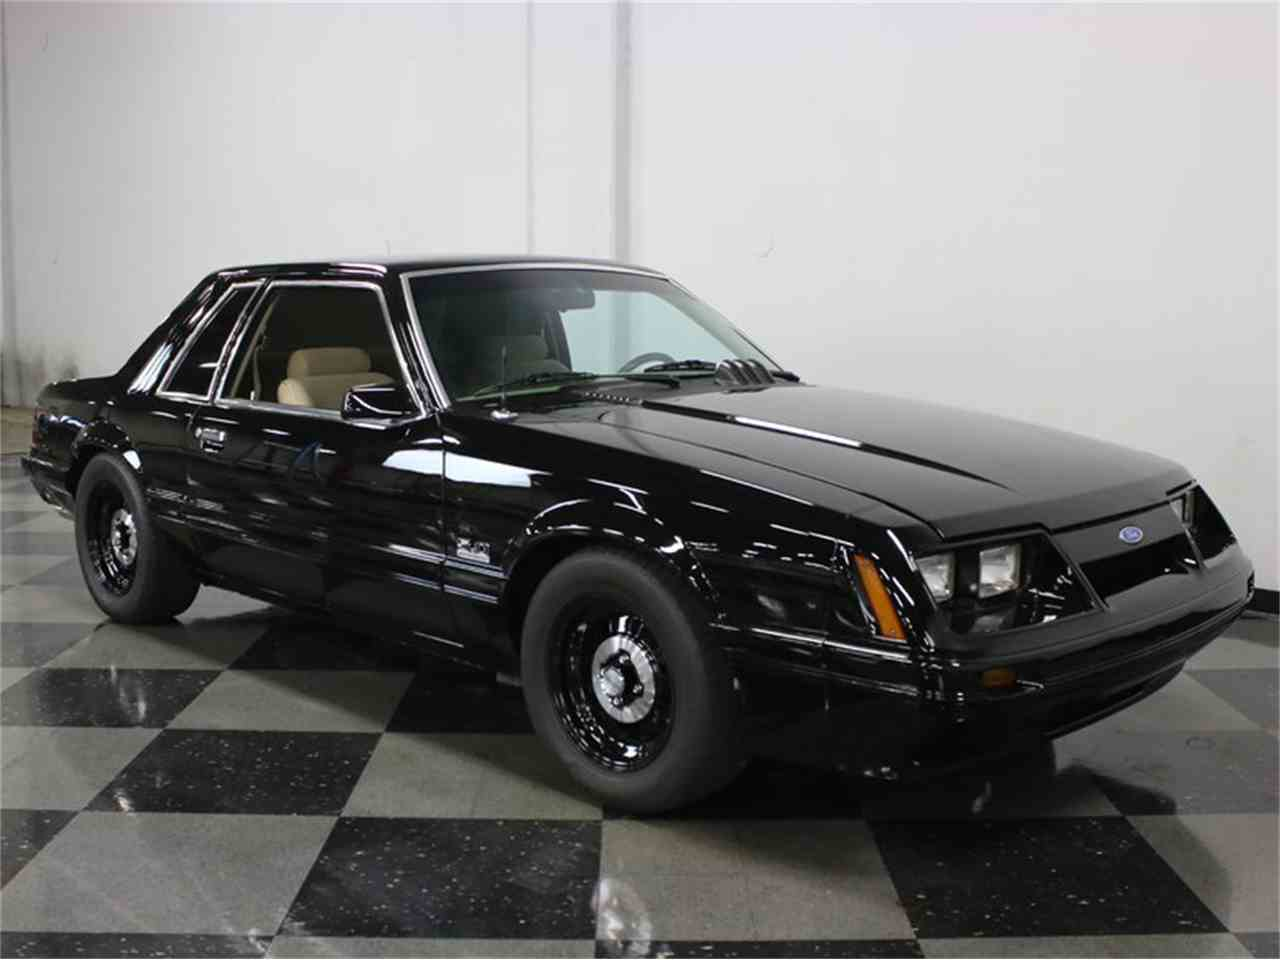 Large Picture of '86 Ford Mustang SSP Interceptor located in Texas - $24,995.00 - JZNT